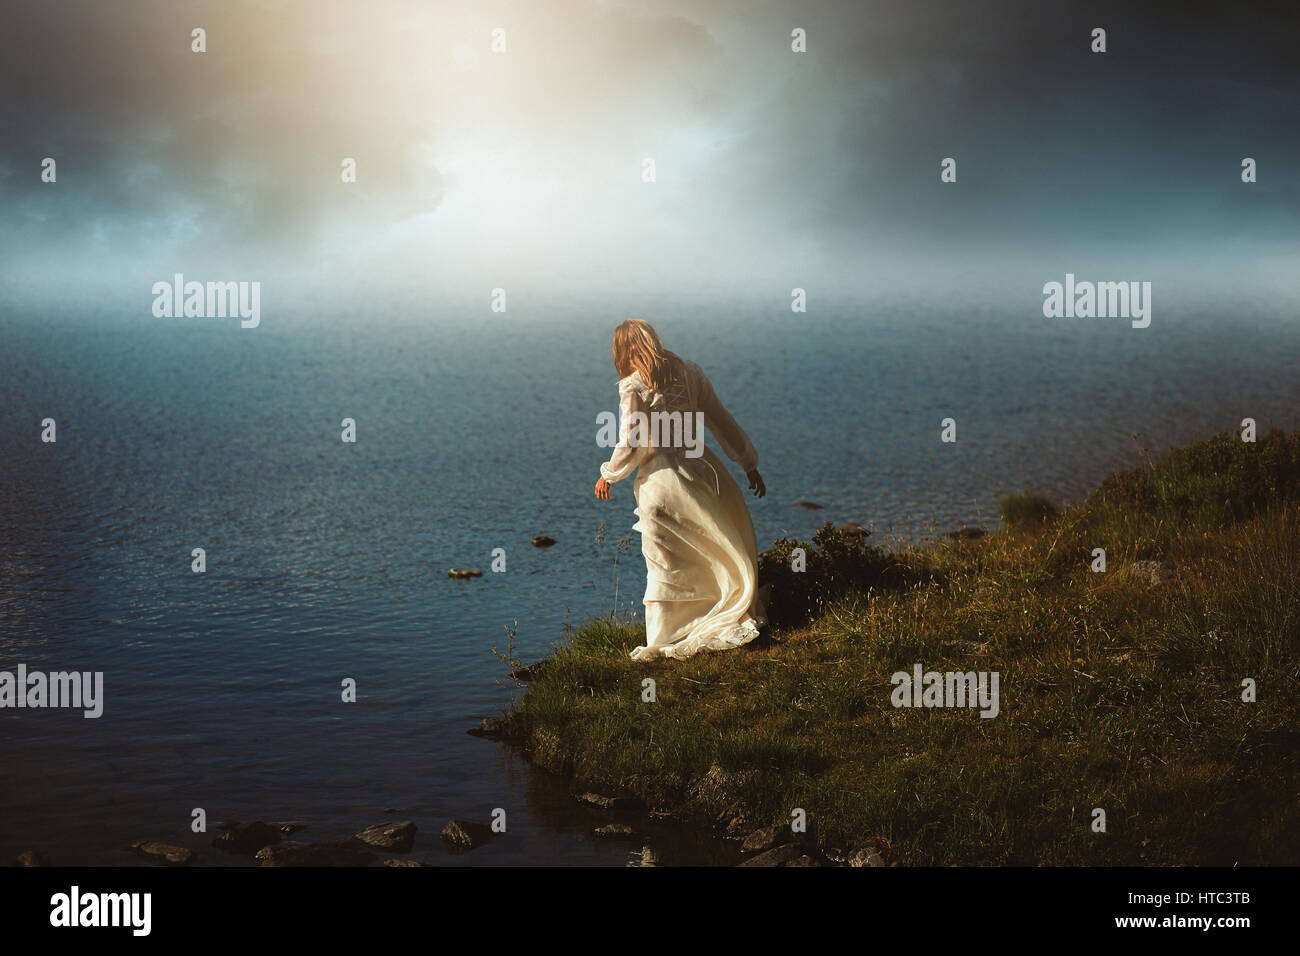 Woman looking at surreal waters. Photomanipulation with dreamy colors - Stock Image